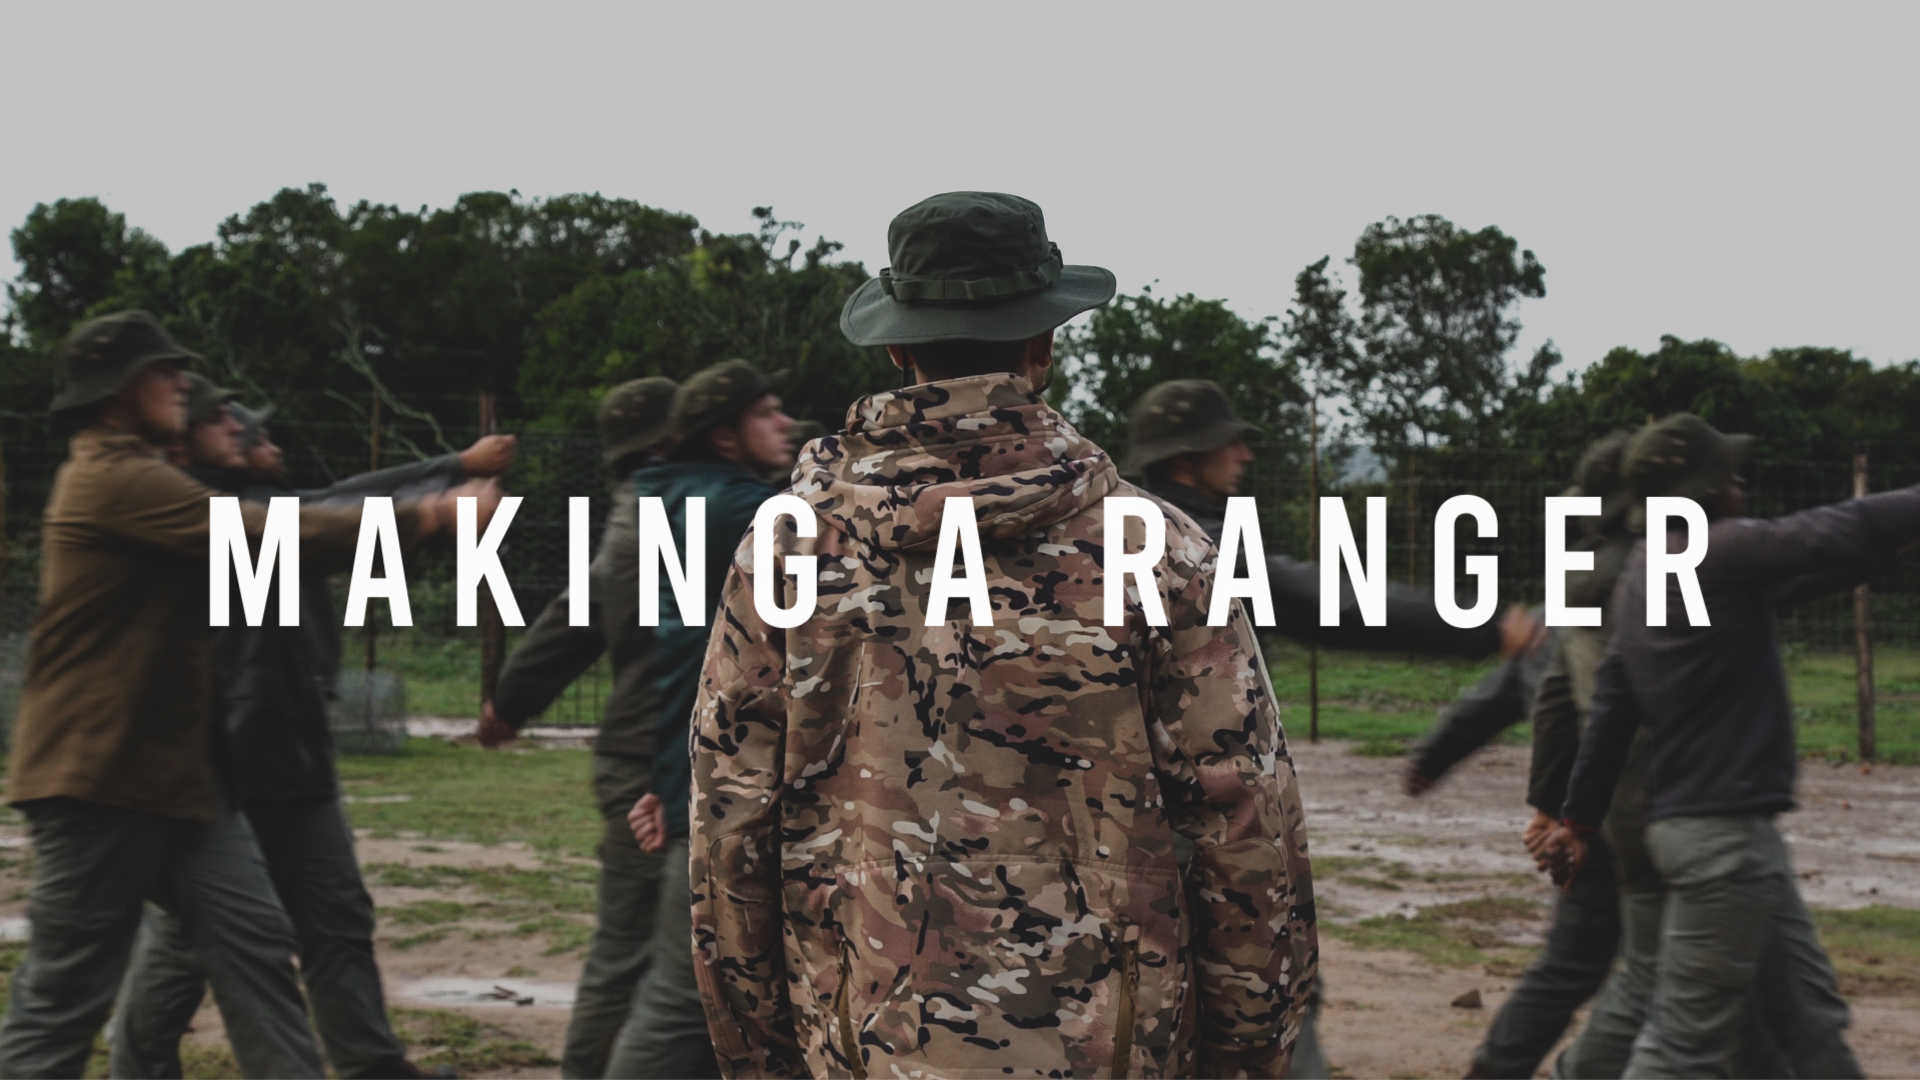 FILM ~ Making a Ranger